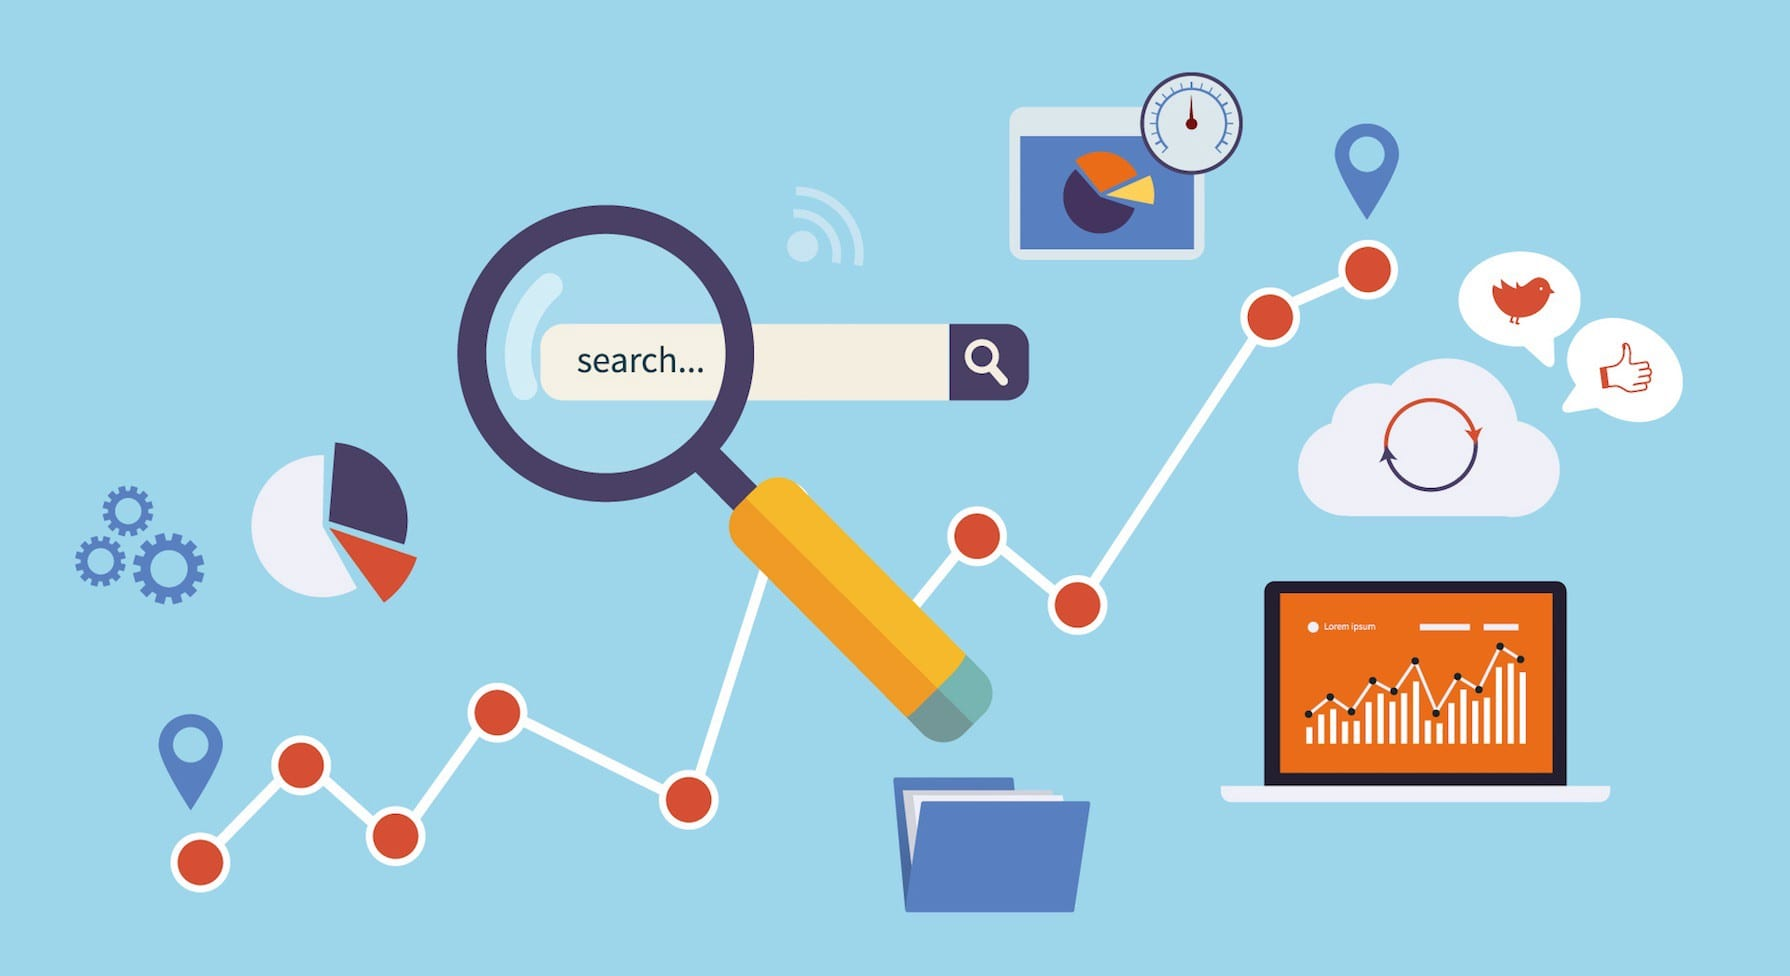 SEO structured data Omaha SEO Experts & Services